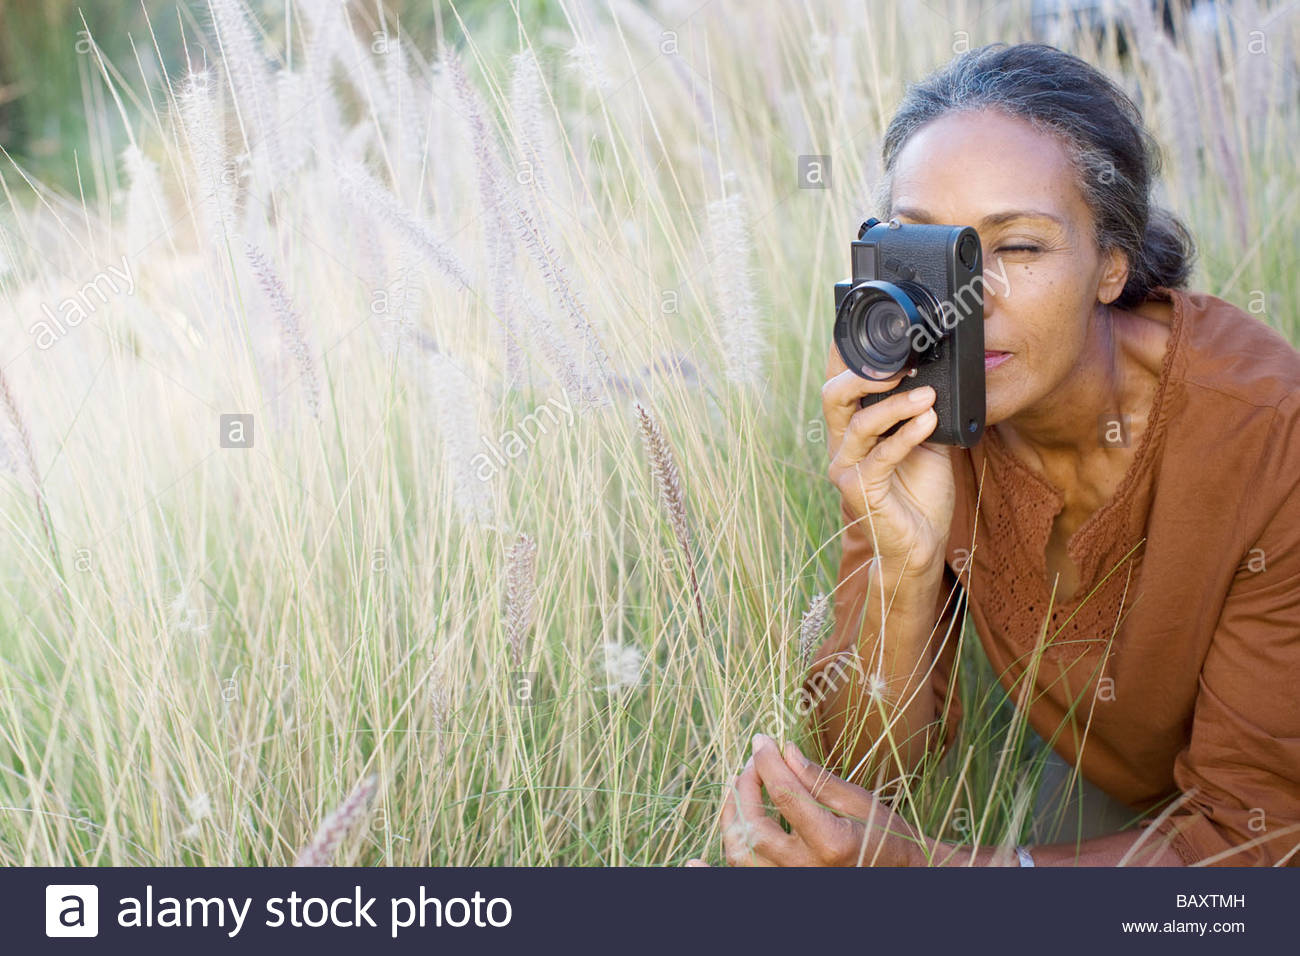 African woman taking photographs outdoors - Stock Image